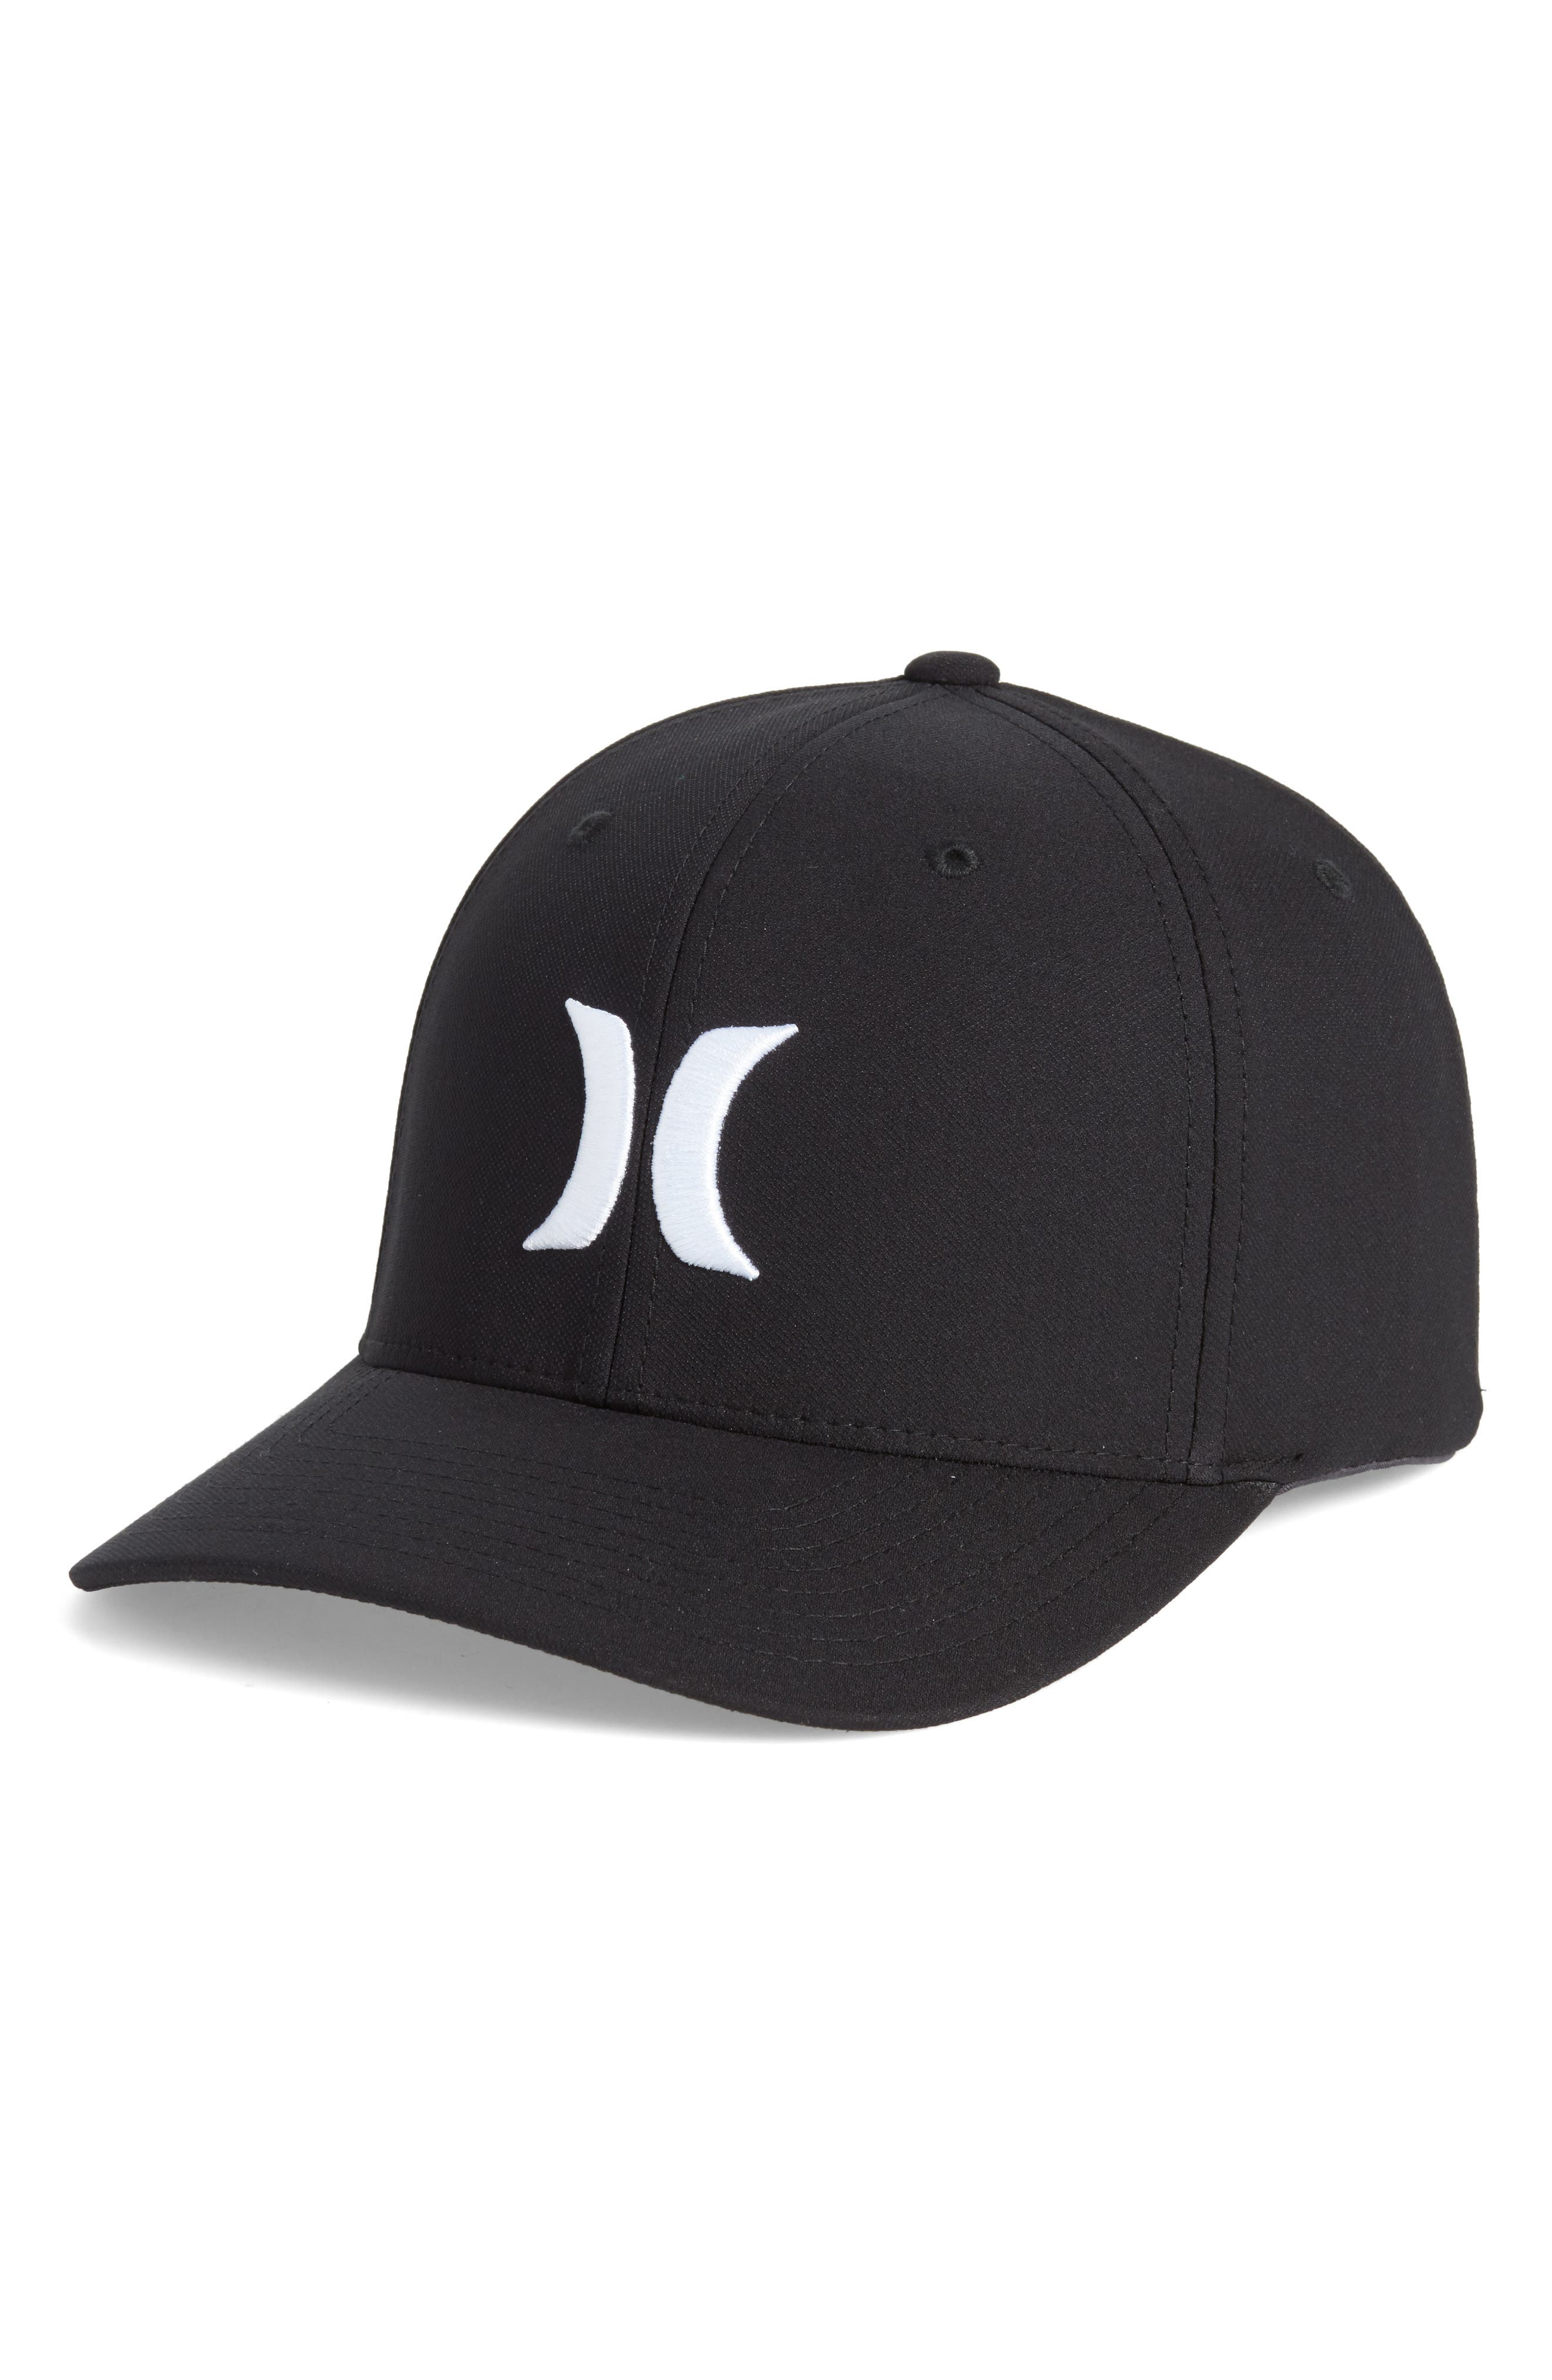 Hurley Dri-FIT One & Only Logo Cap